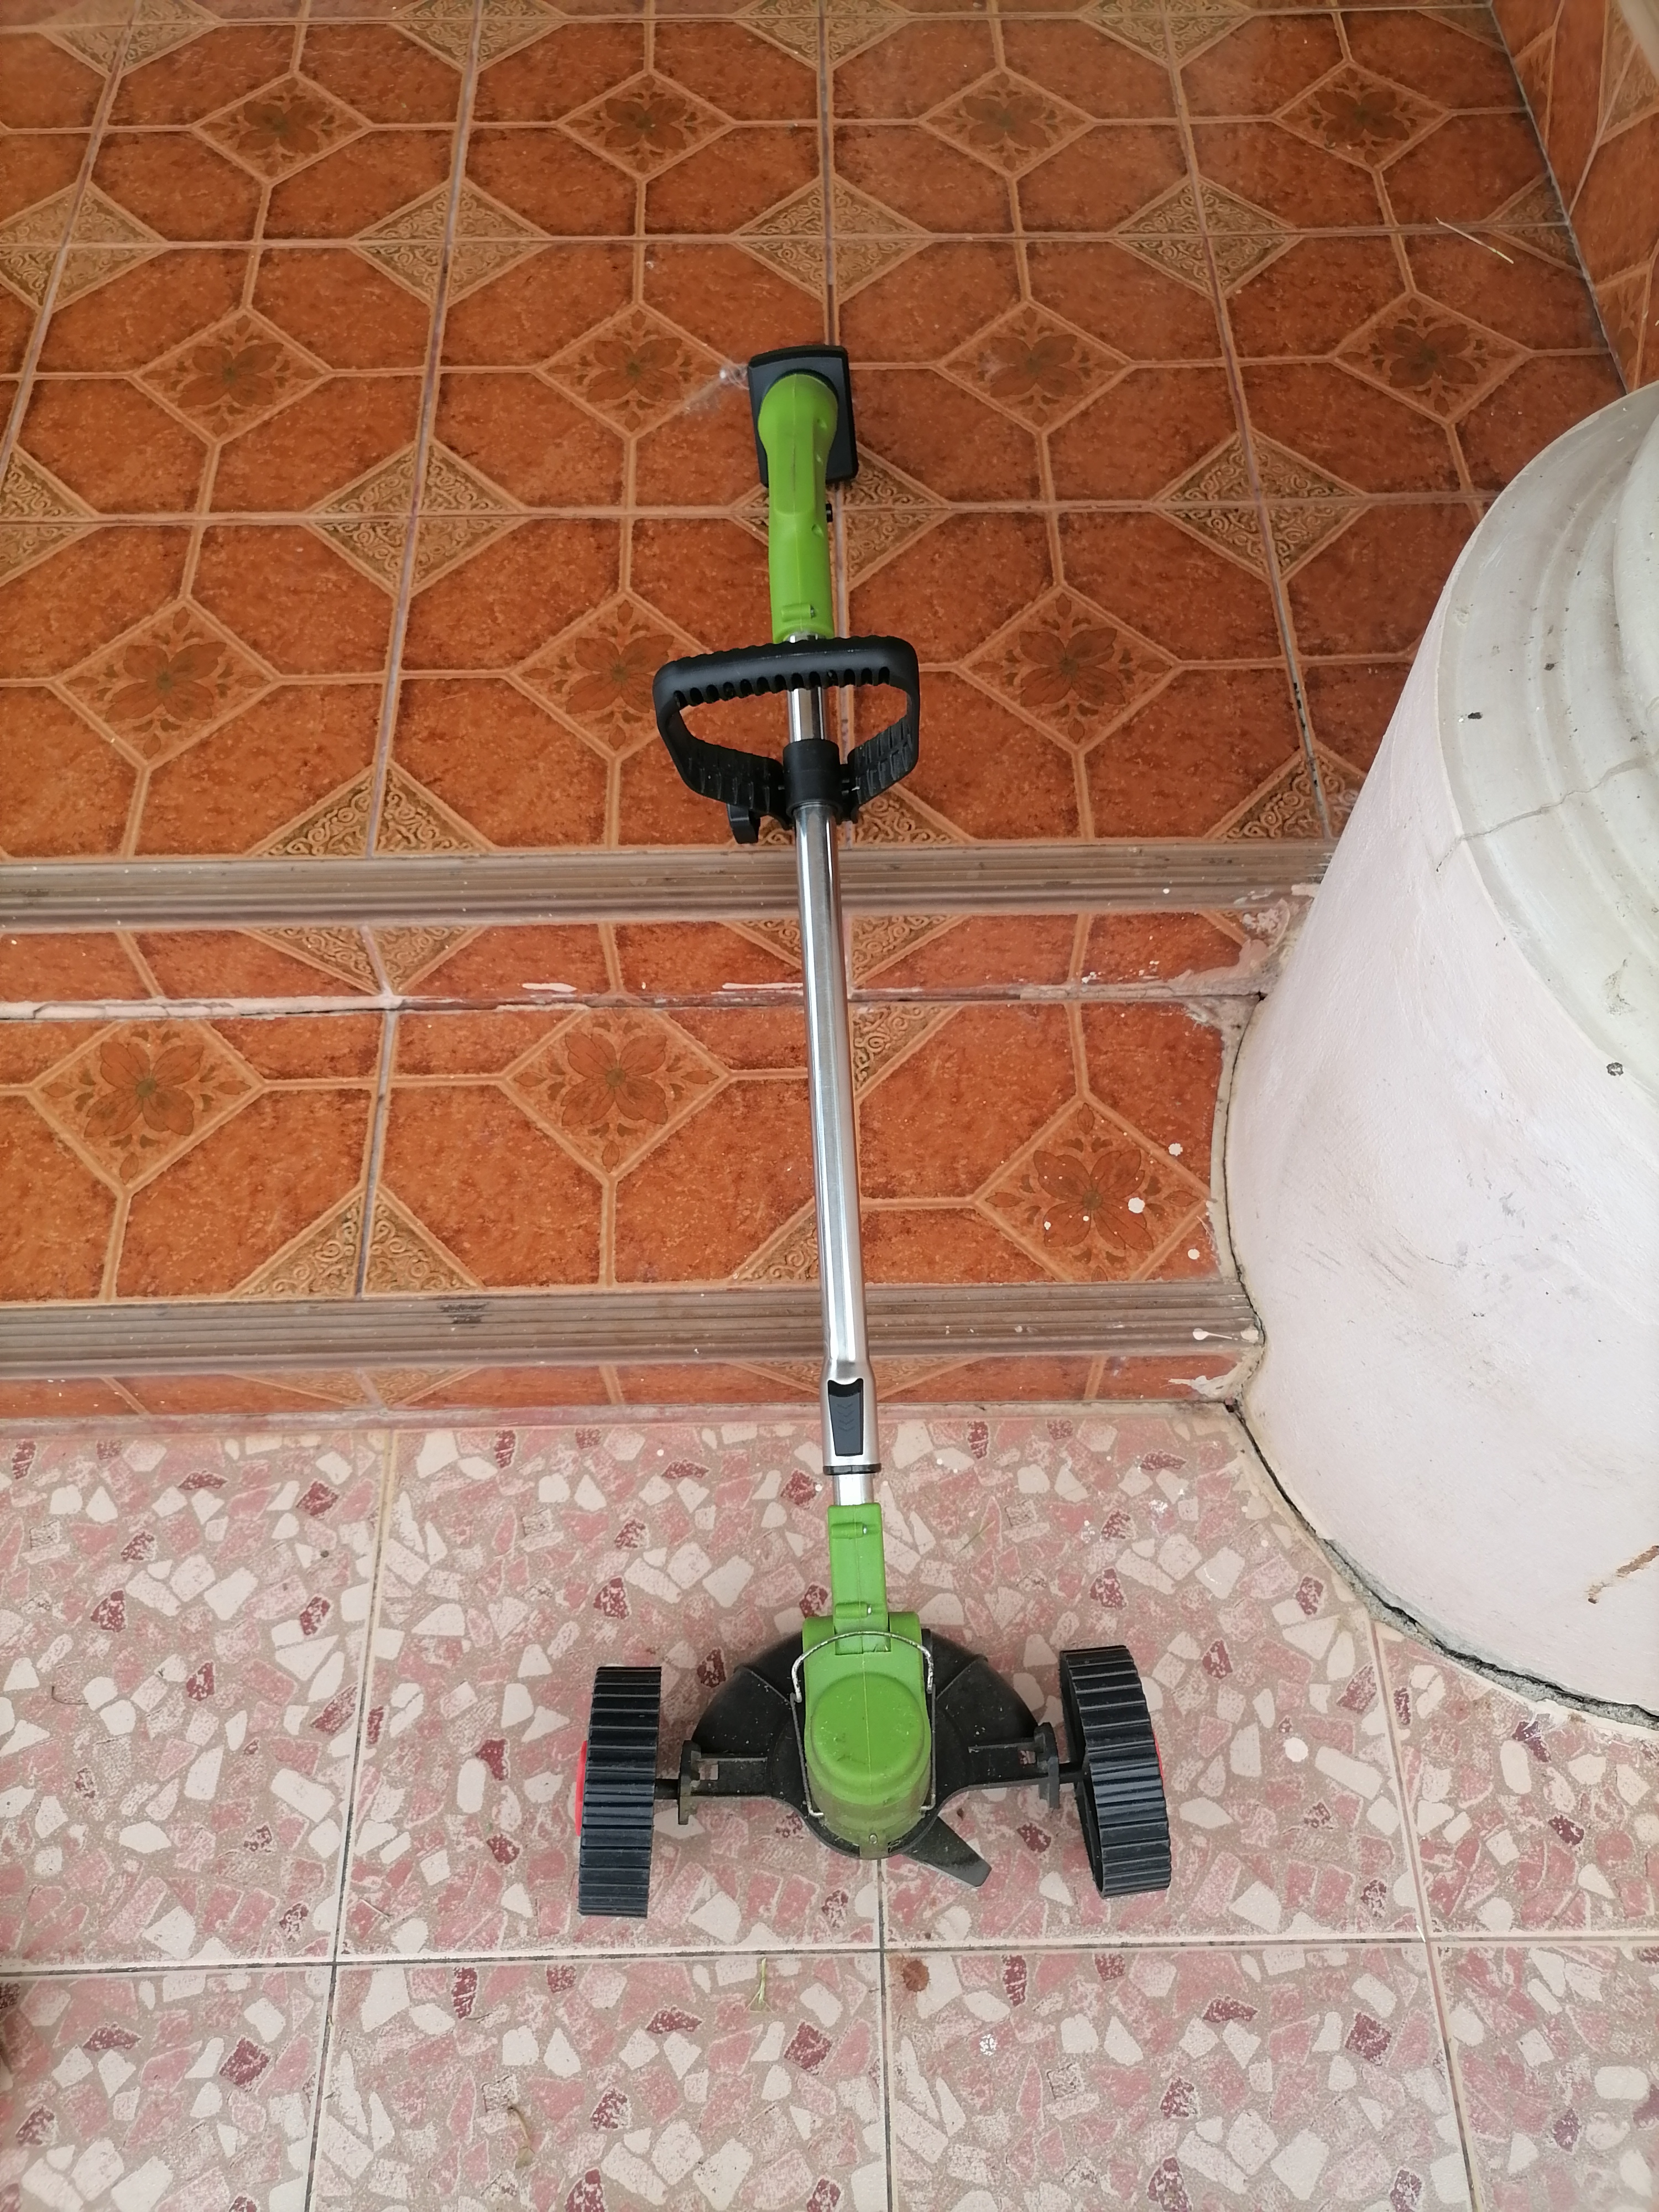 weed cutter with wheels